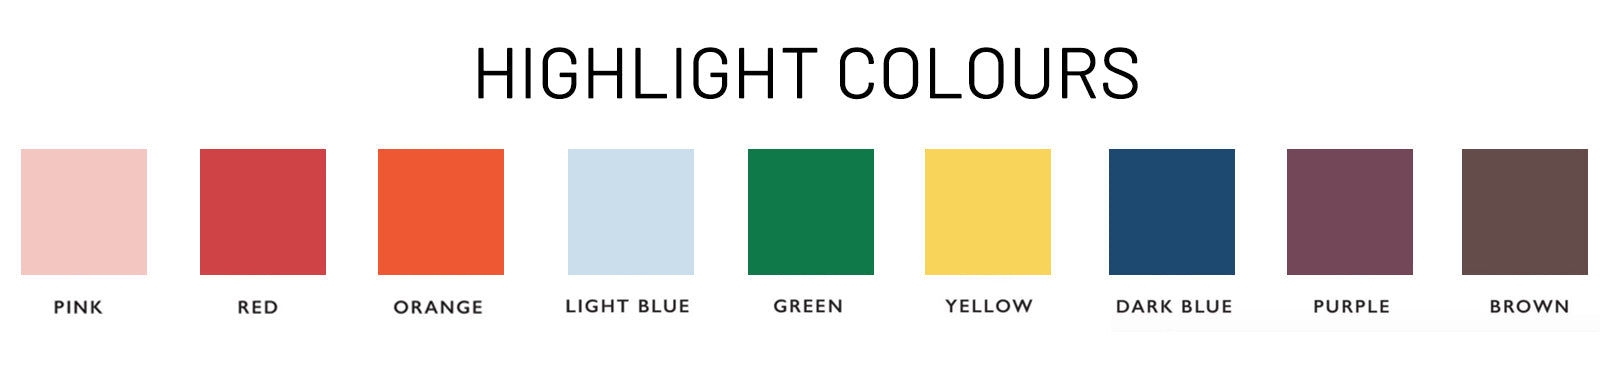 highlight colours for wardrobe